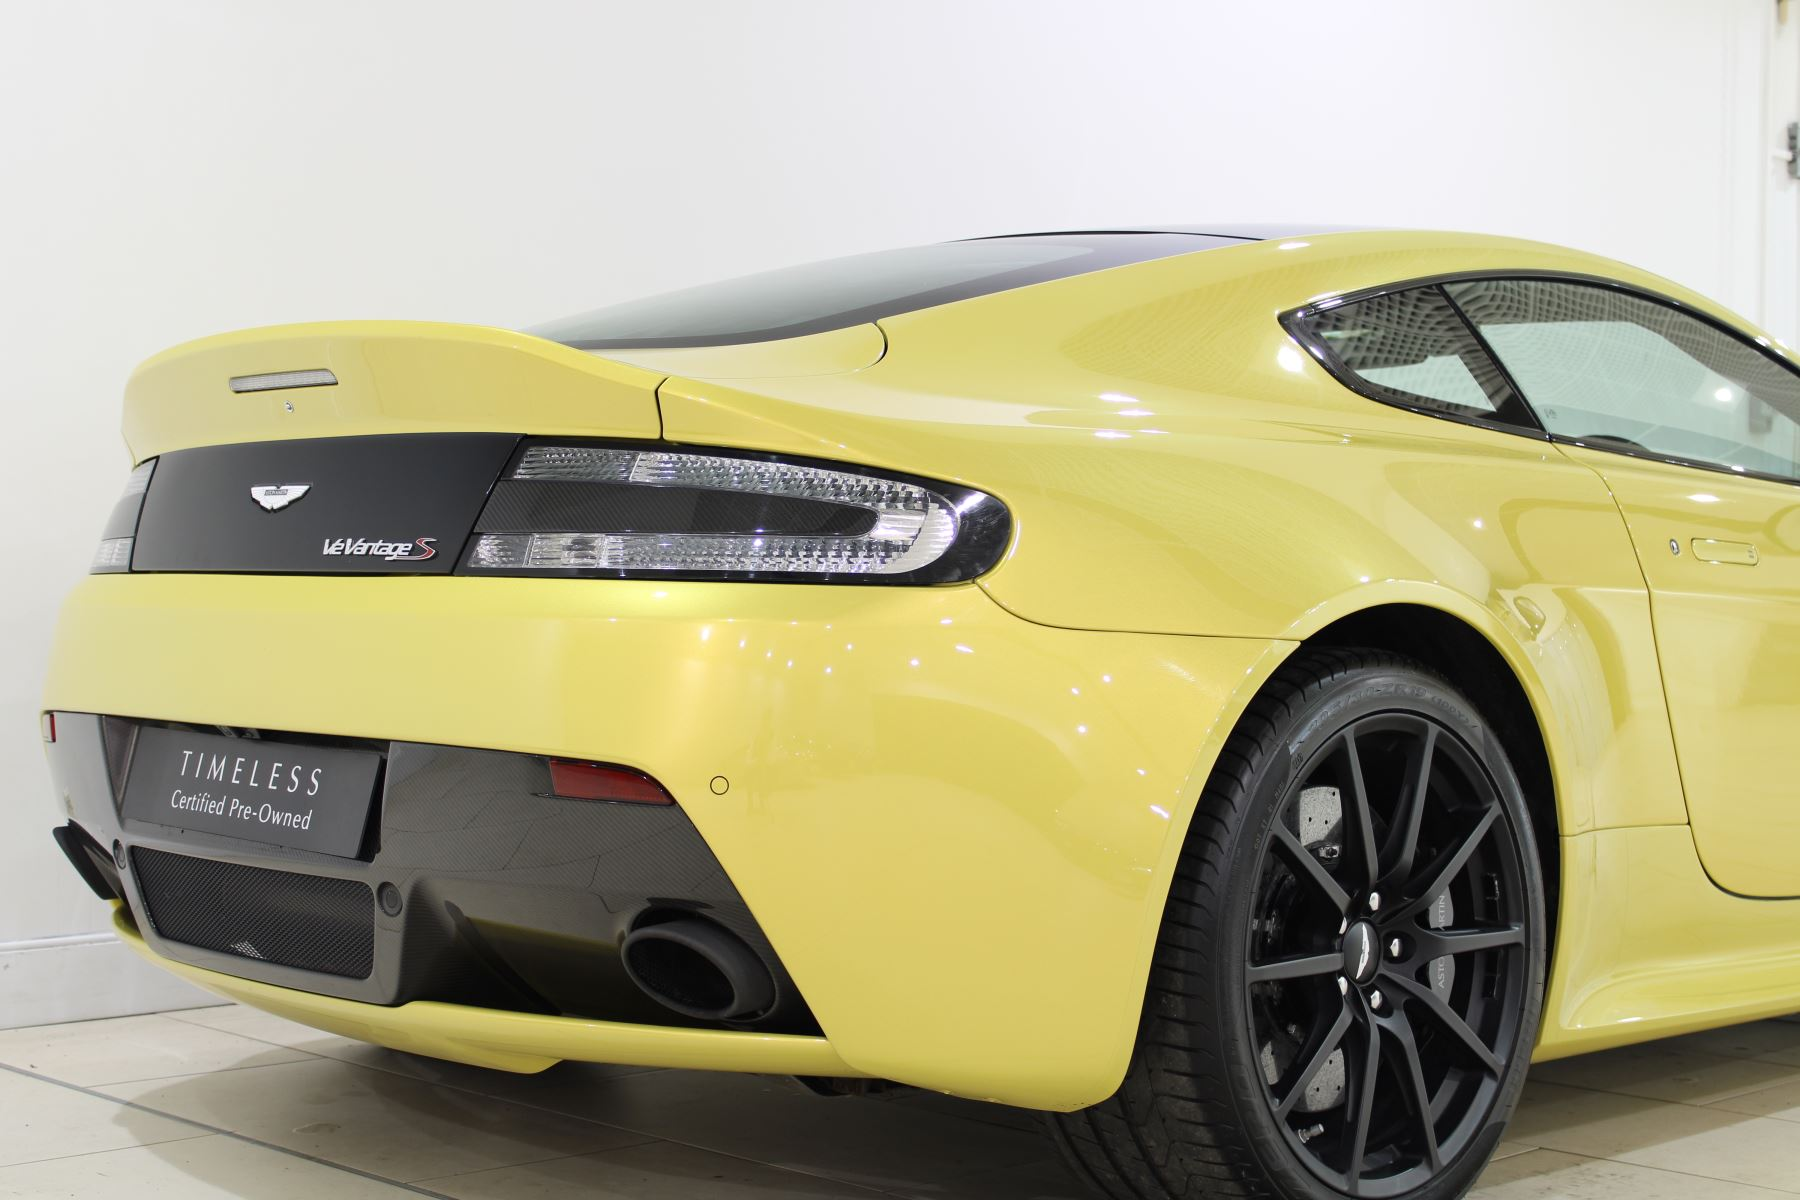 Aston Martin V12 Vantage S Coupe S 2dr Sportshift III image 8